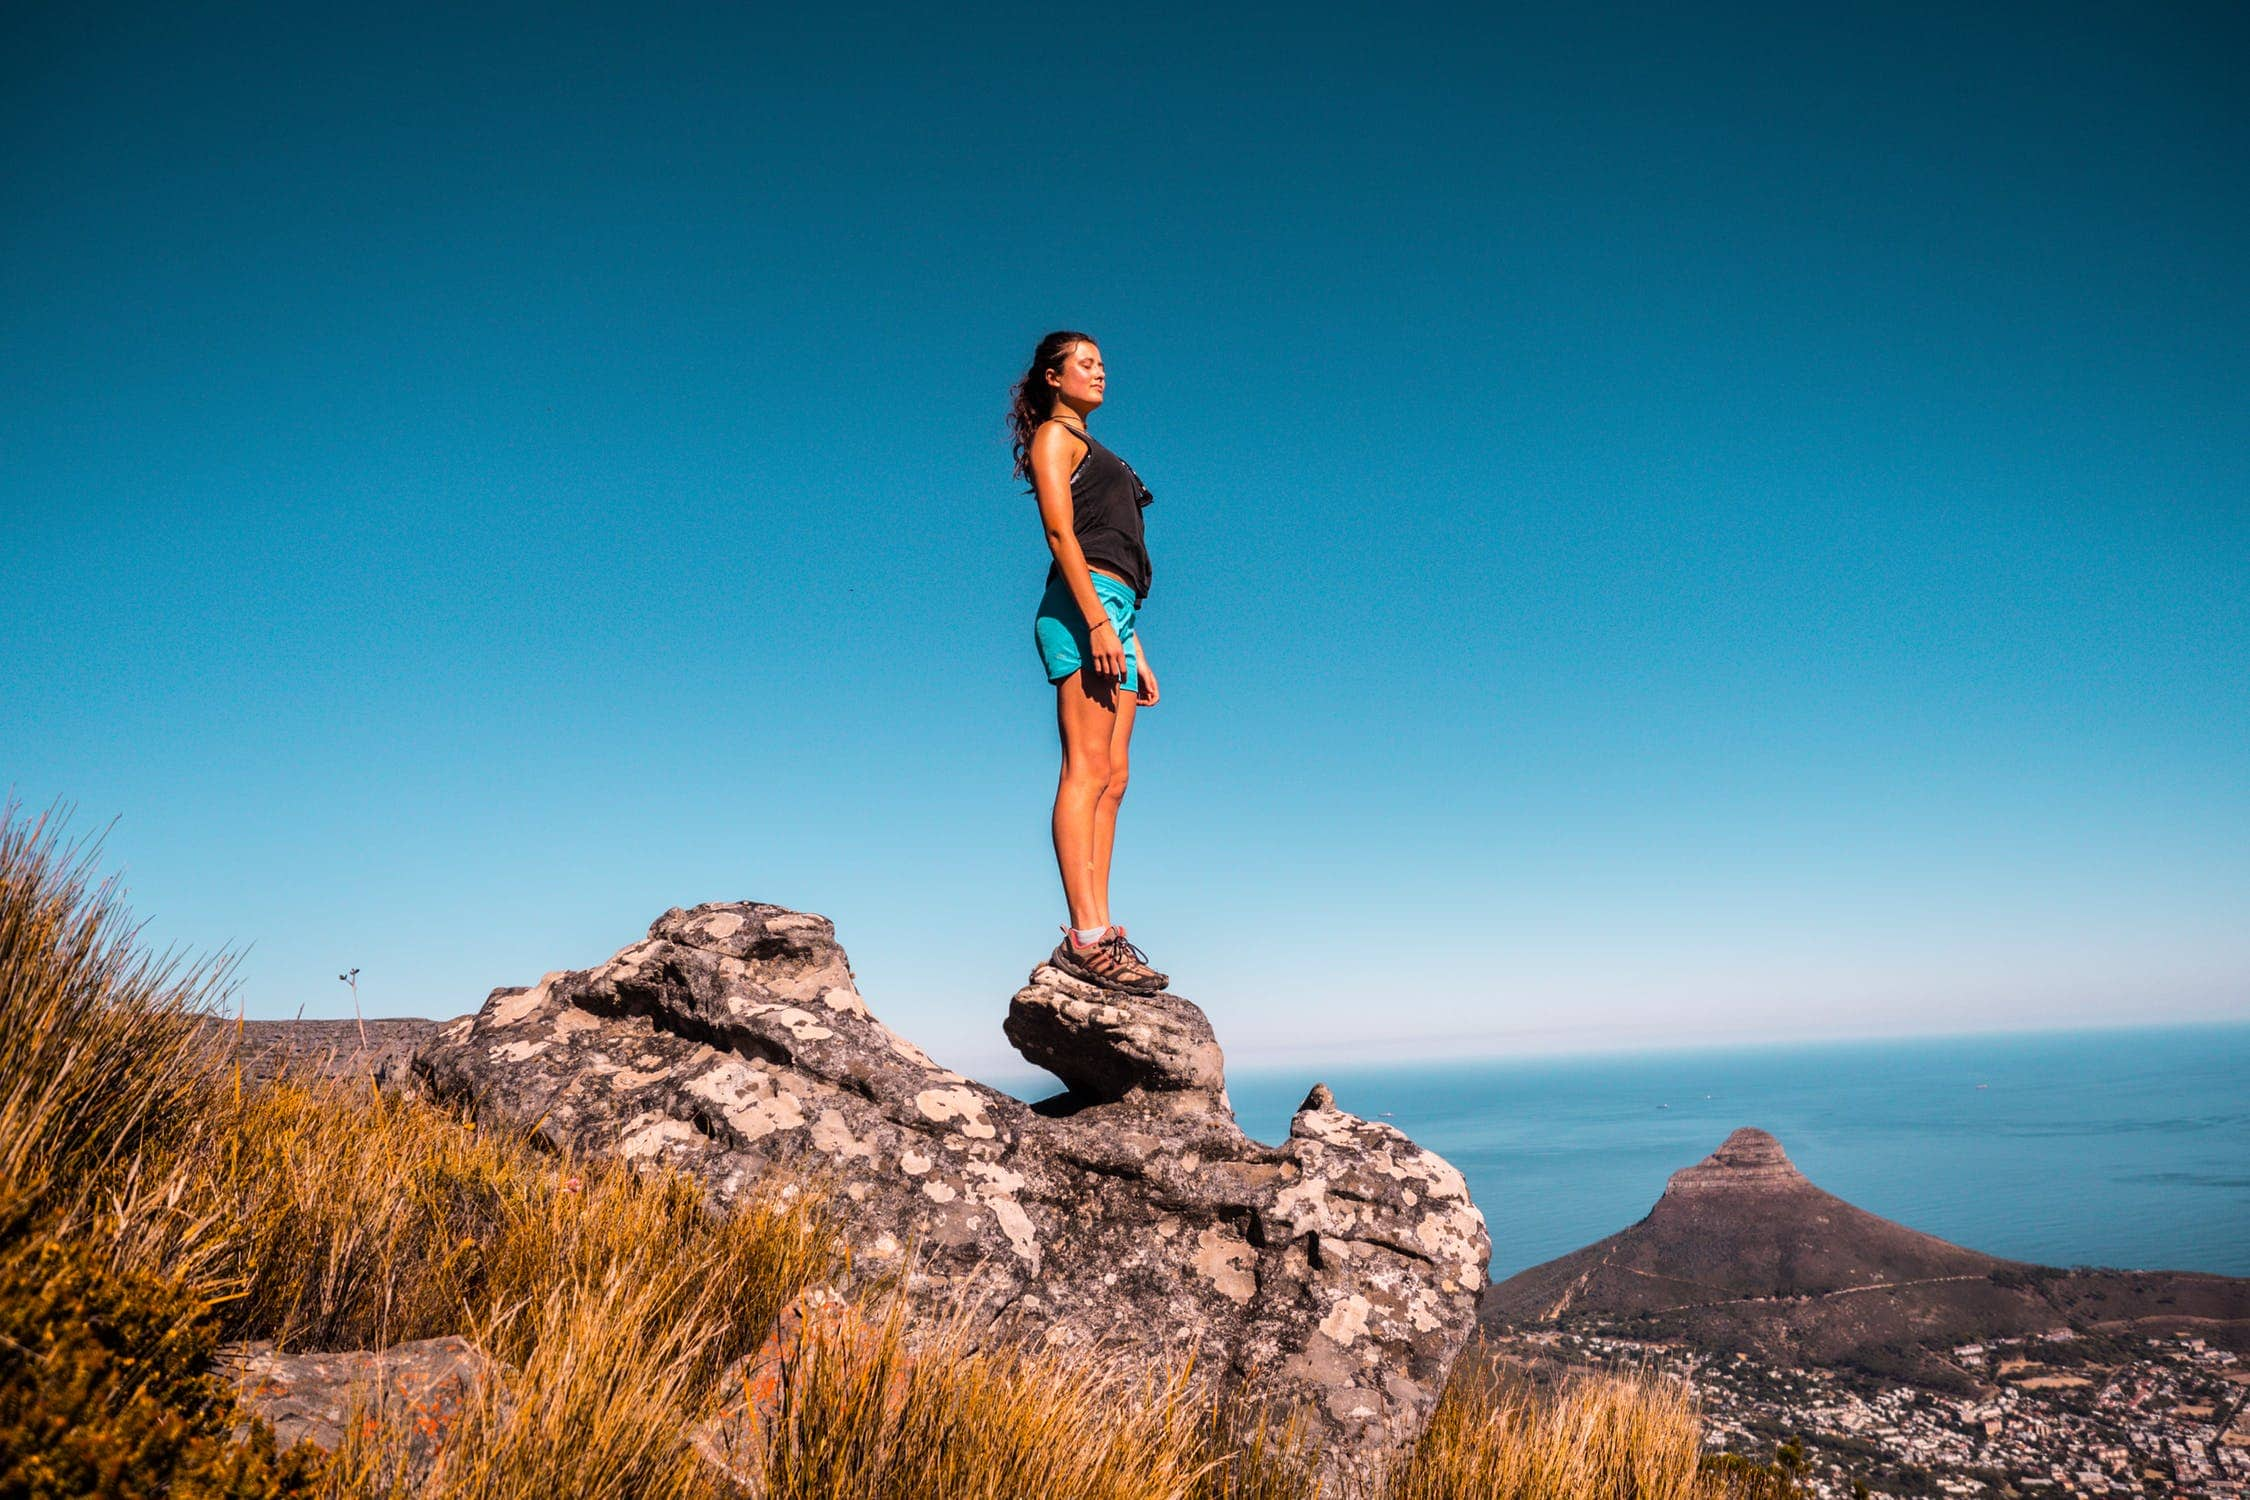 Things to do when visiting Cape Town